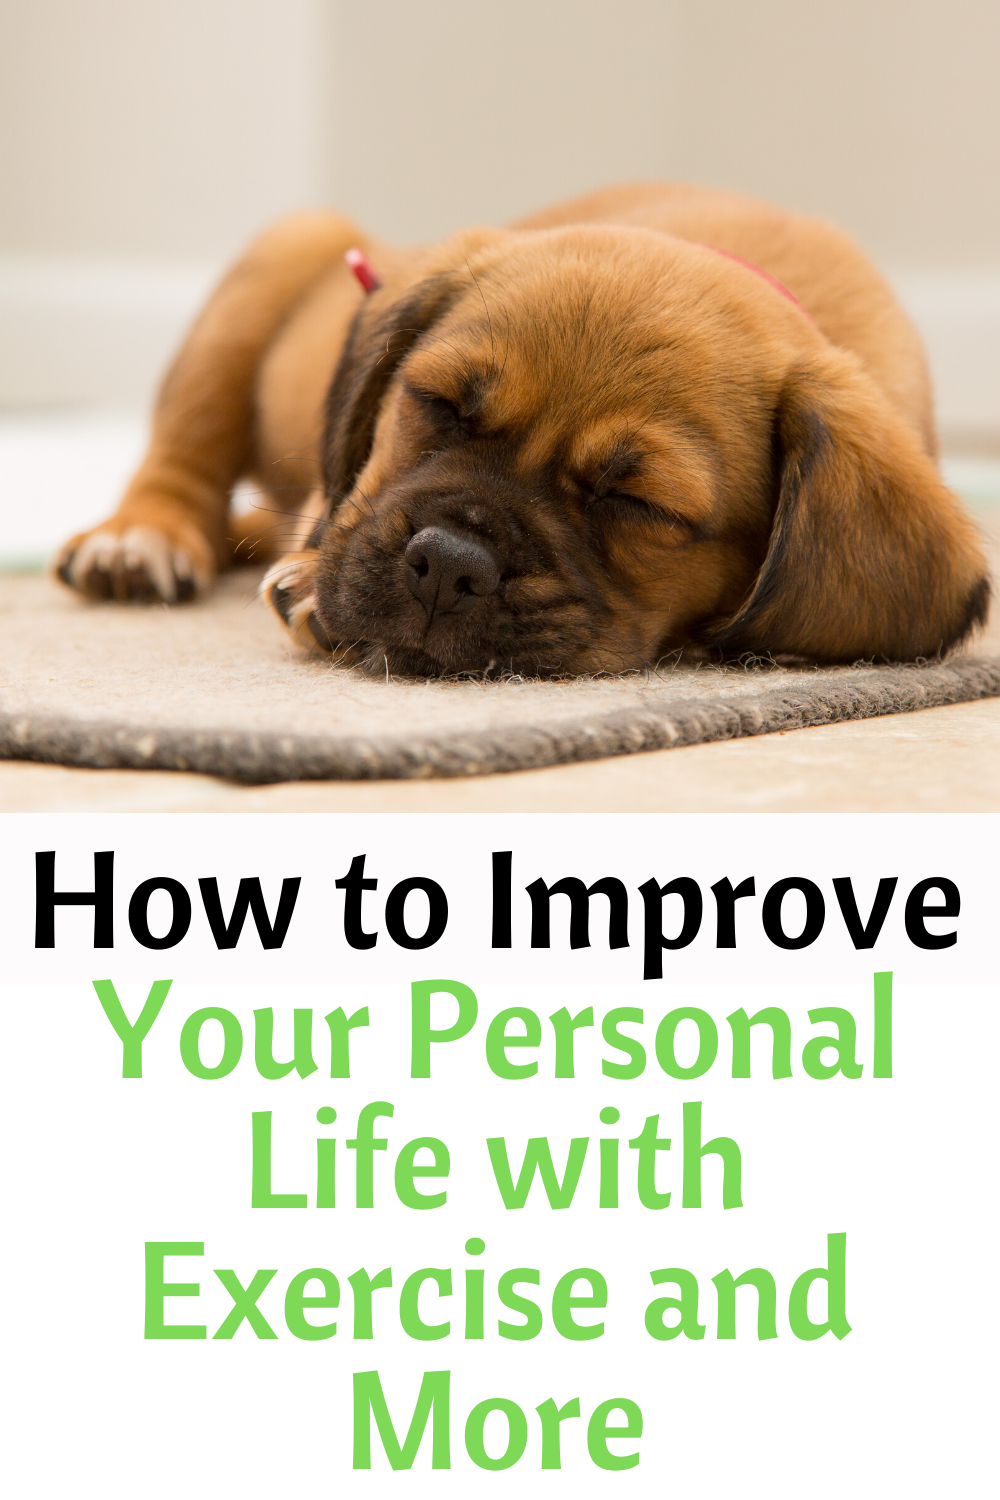 How to Improve Your Personal Life with Exercise and More